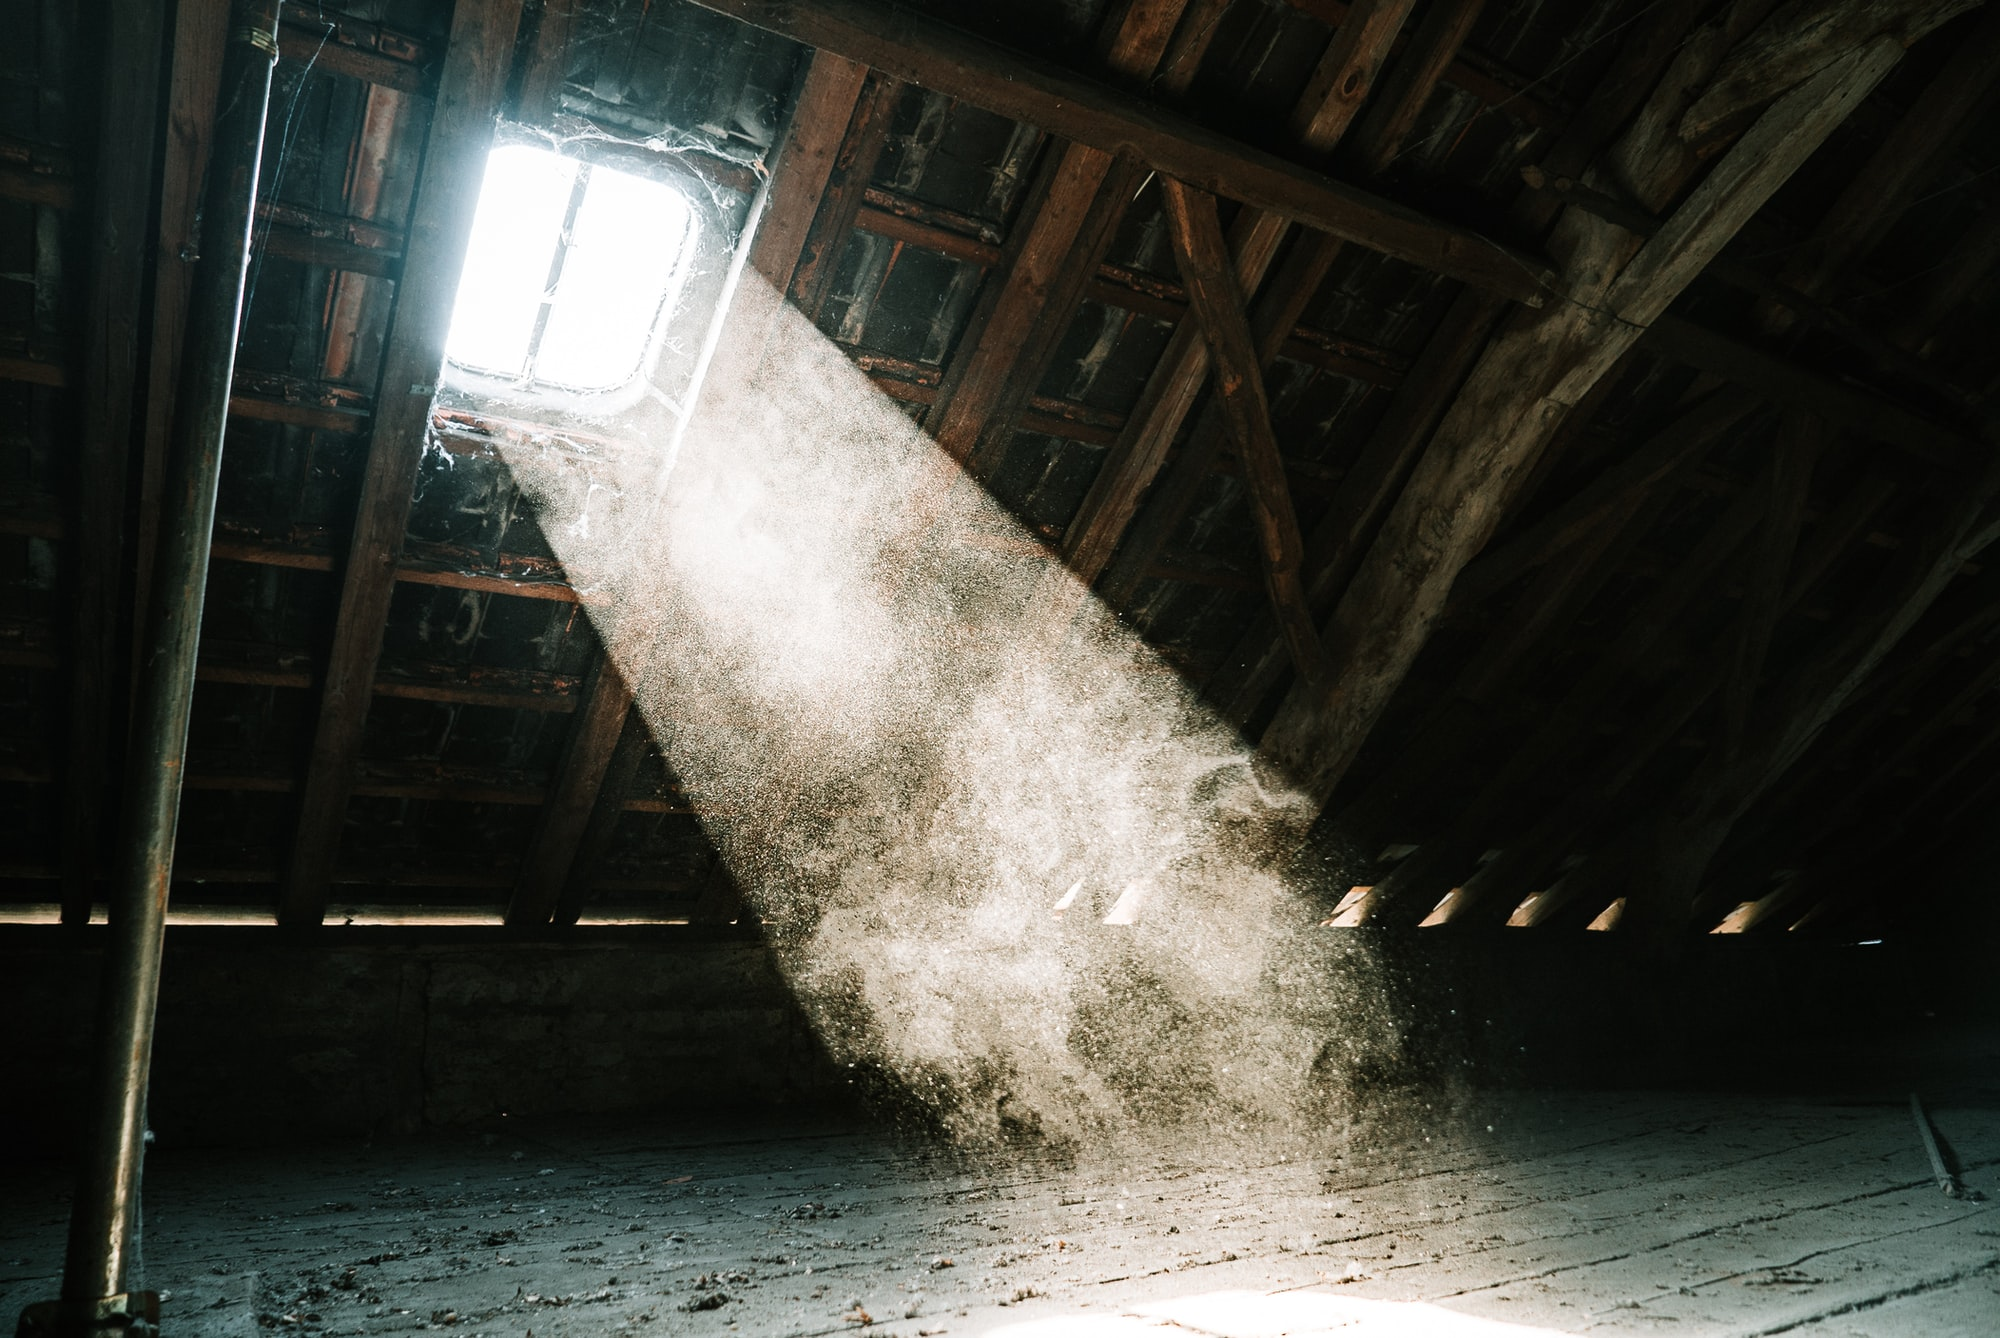 A random attic in the ghost town Manheim, Germany. It's going to be teared down for coal in the next years, so everything is abandoned.